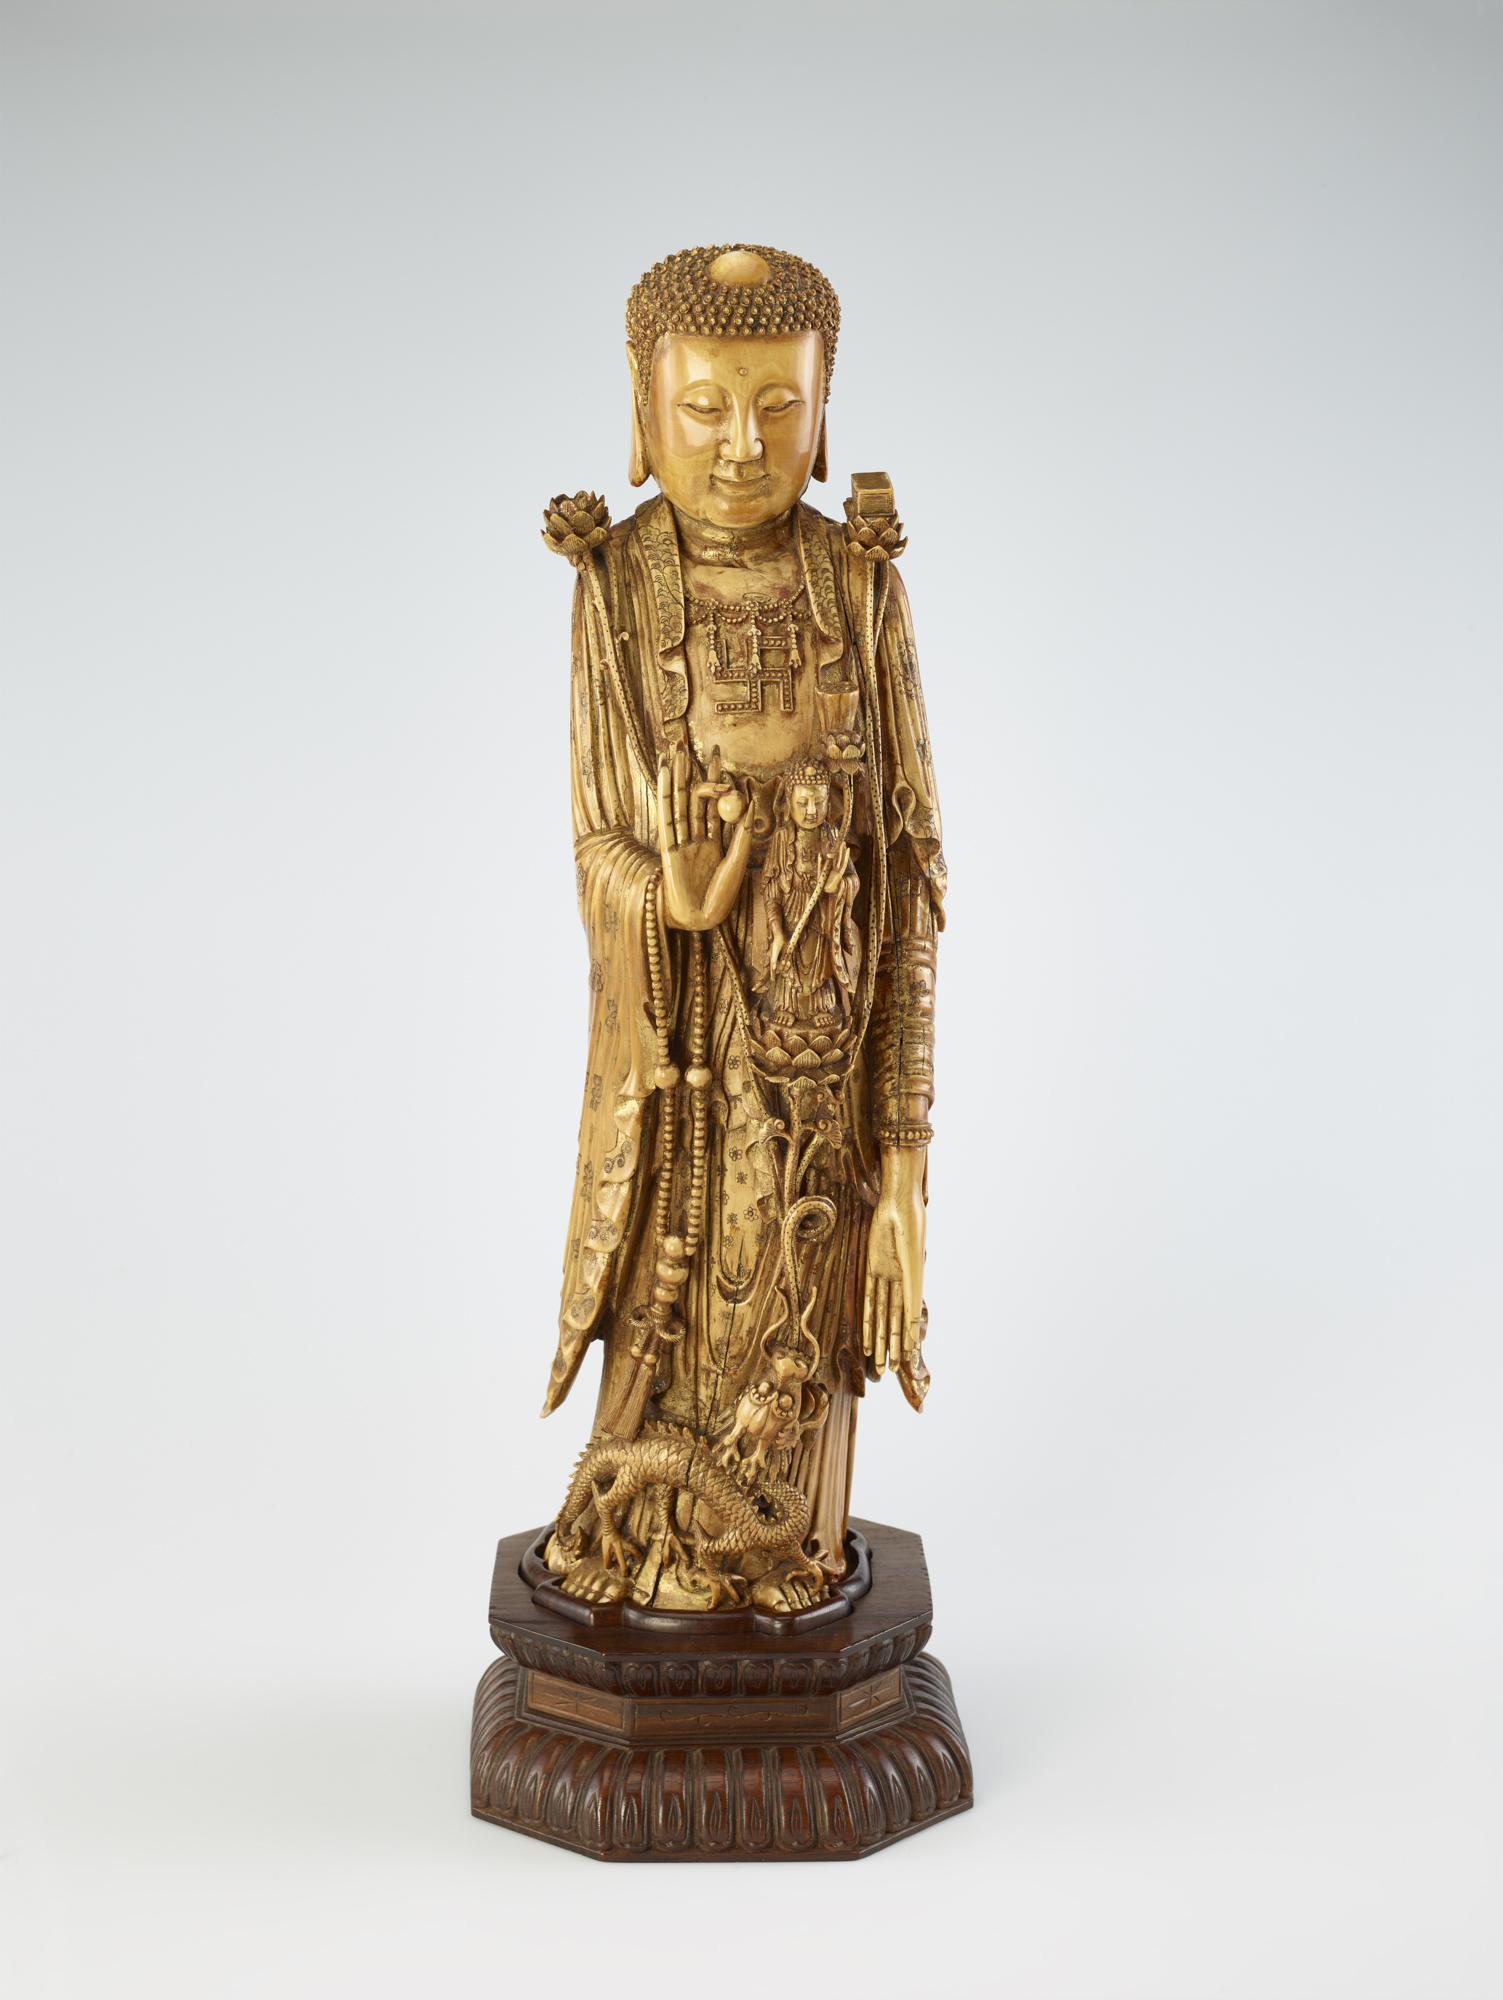 carved statue showing a man holding a seed pod in his hand